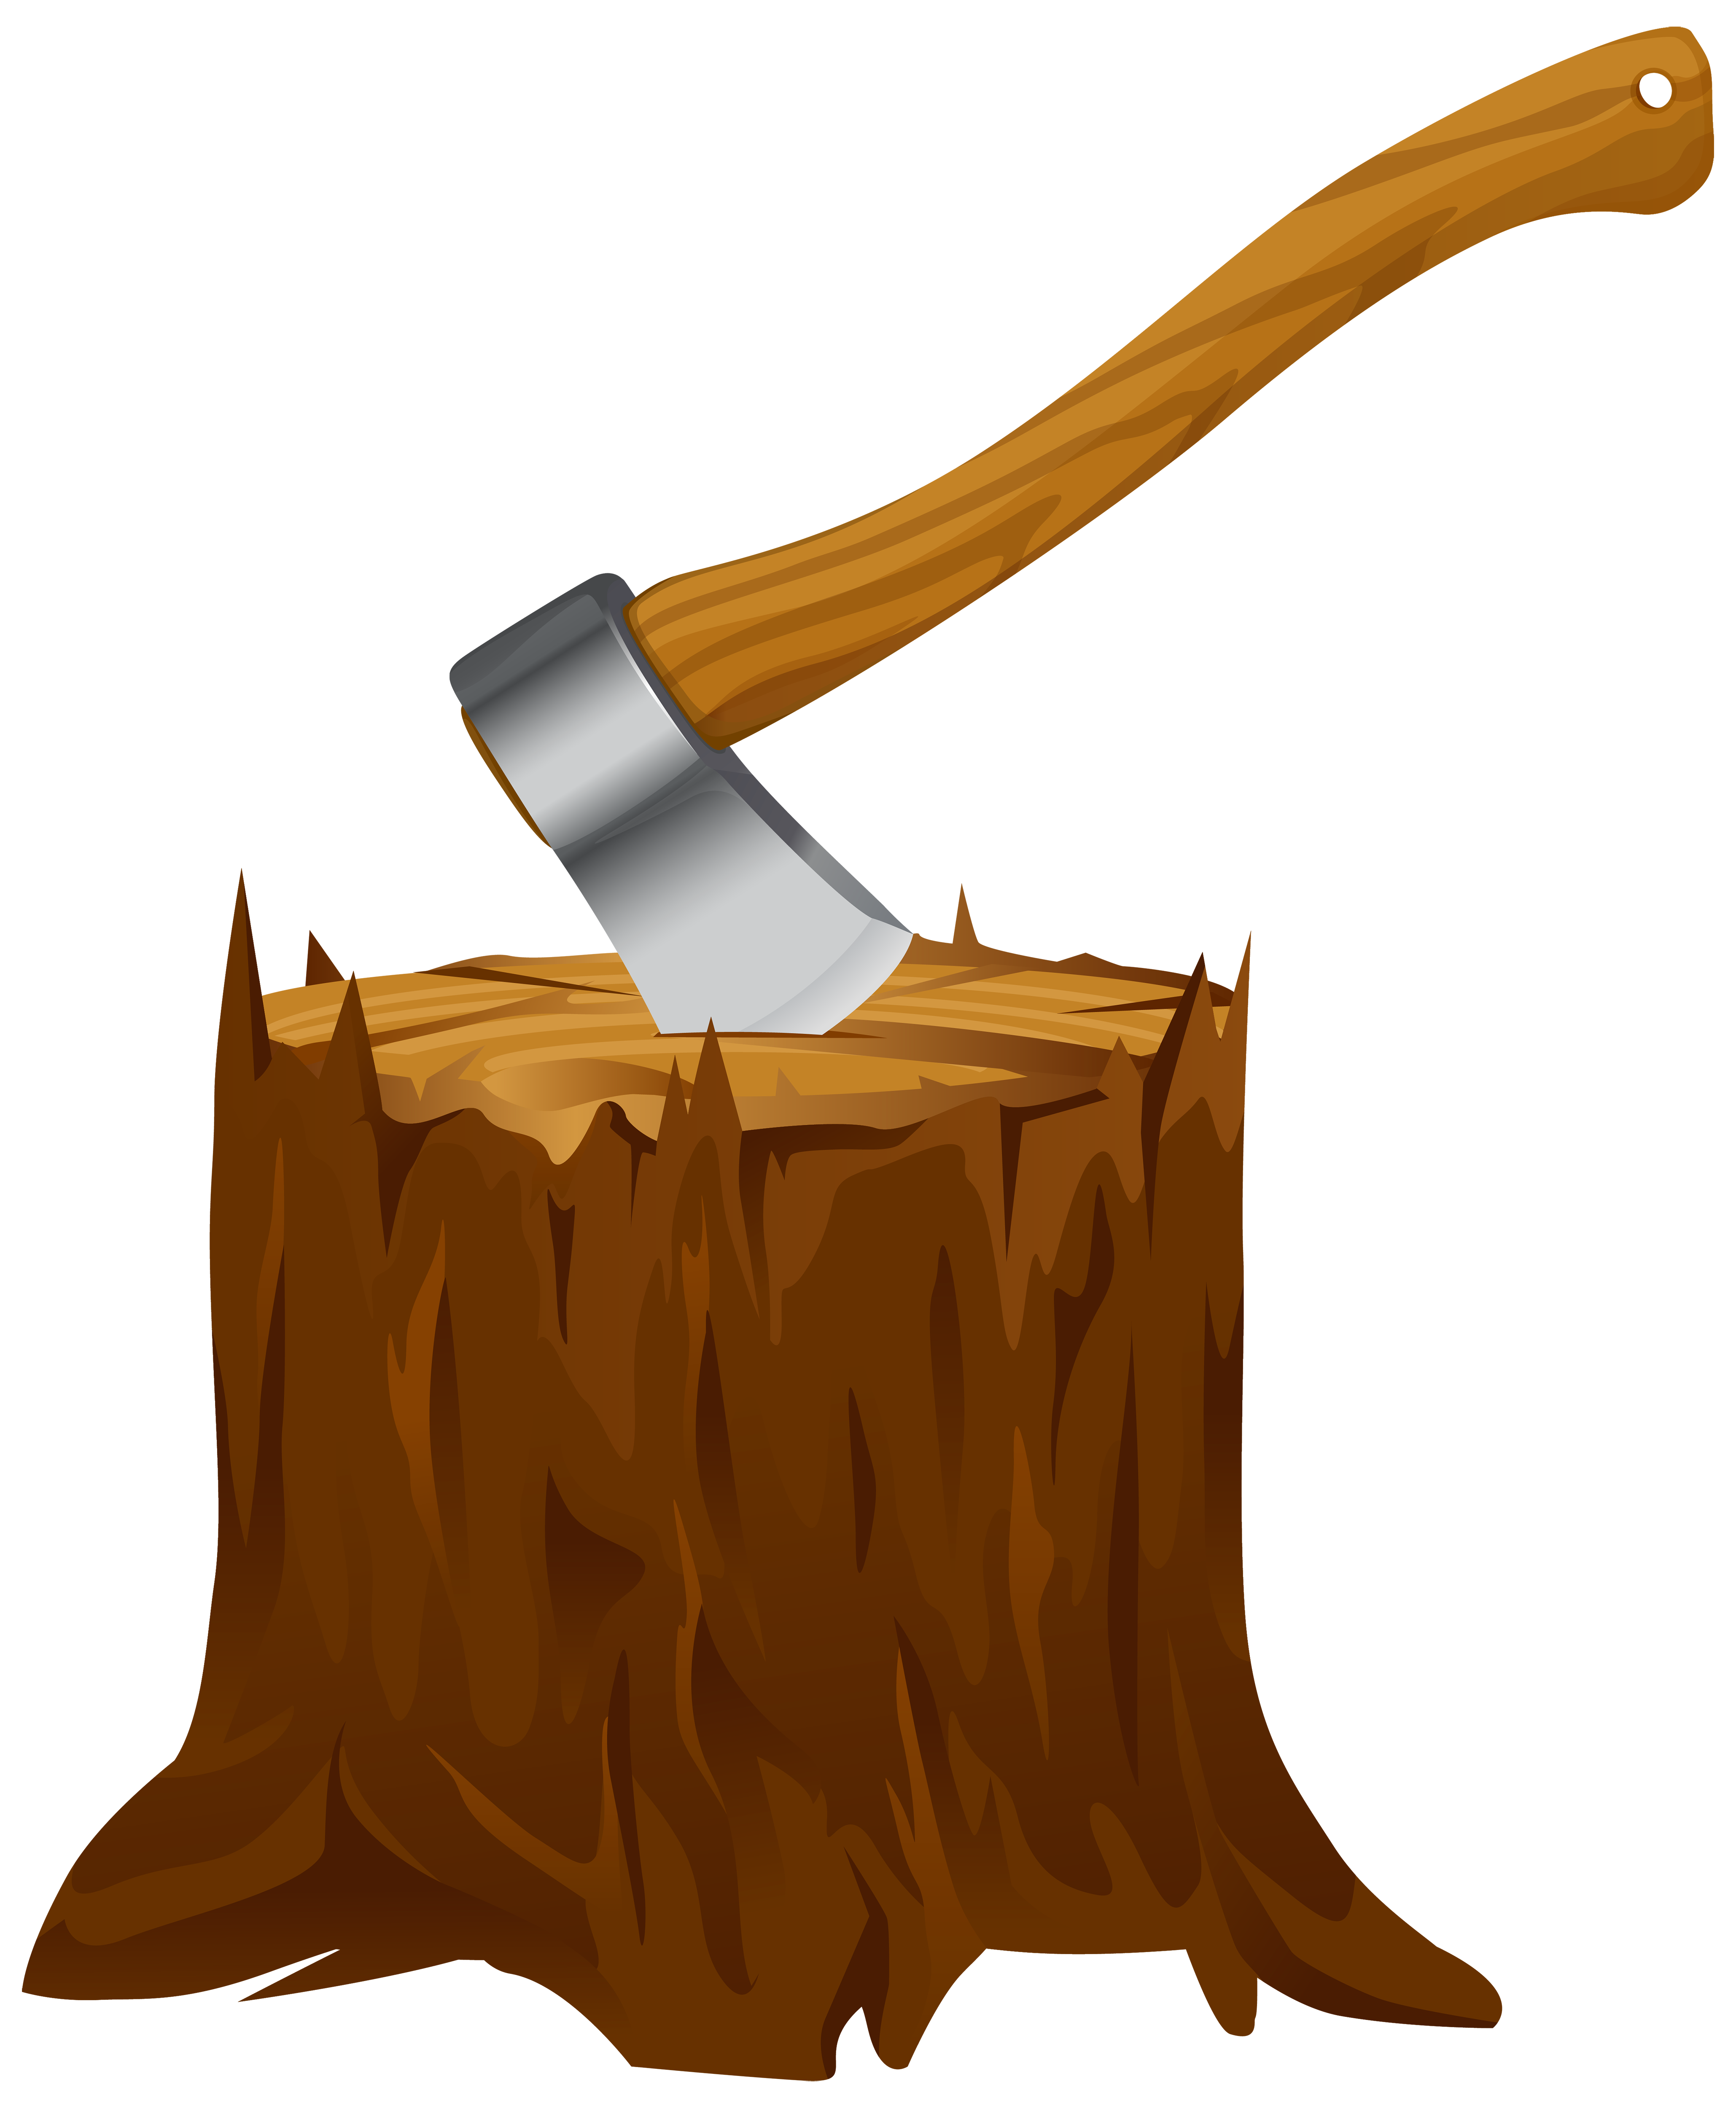 Tree stump with png. Ax clipart axe